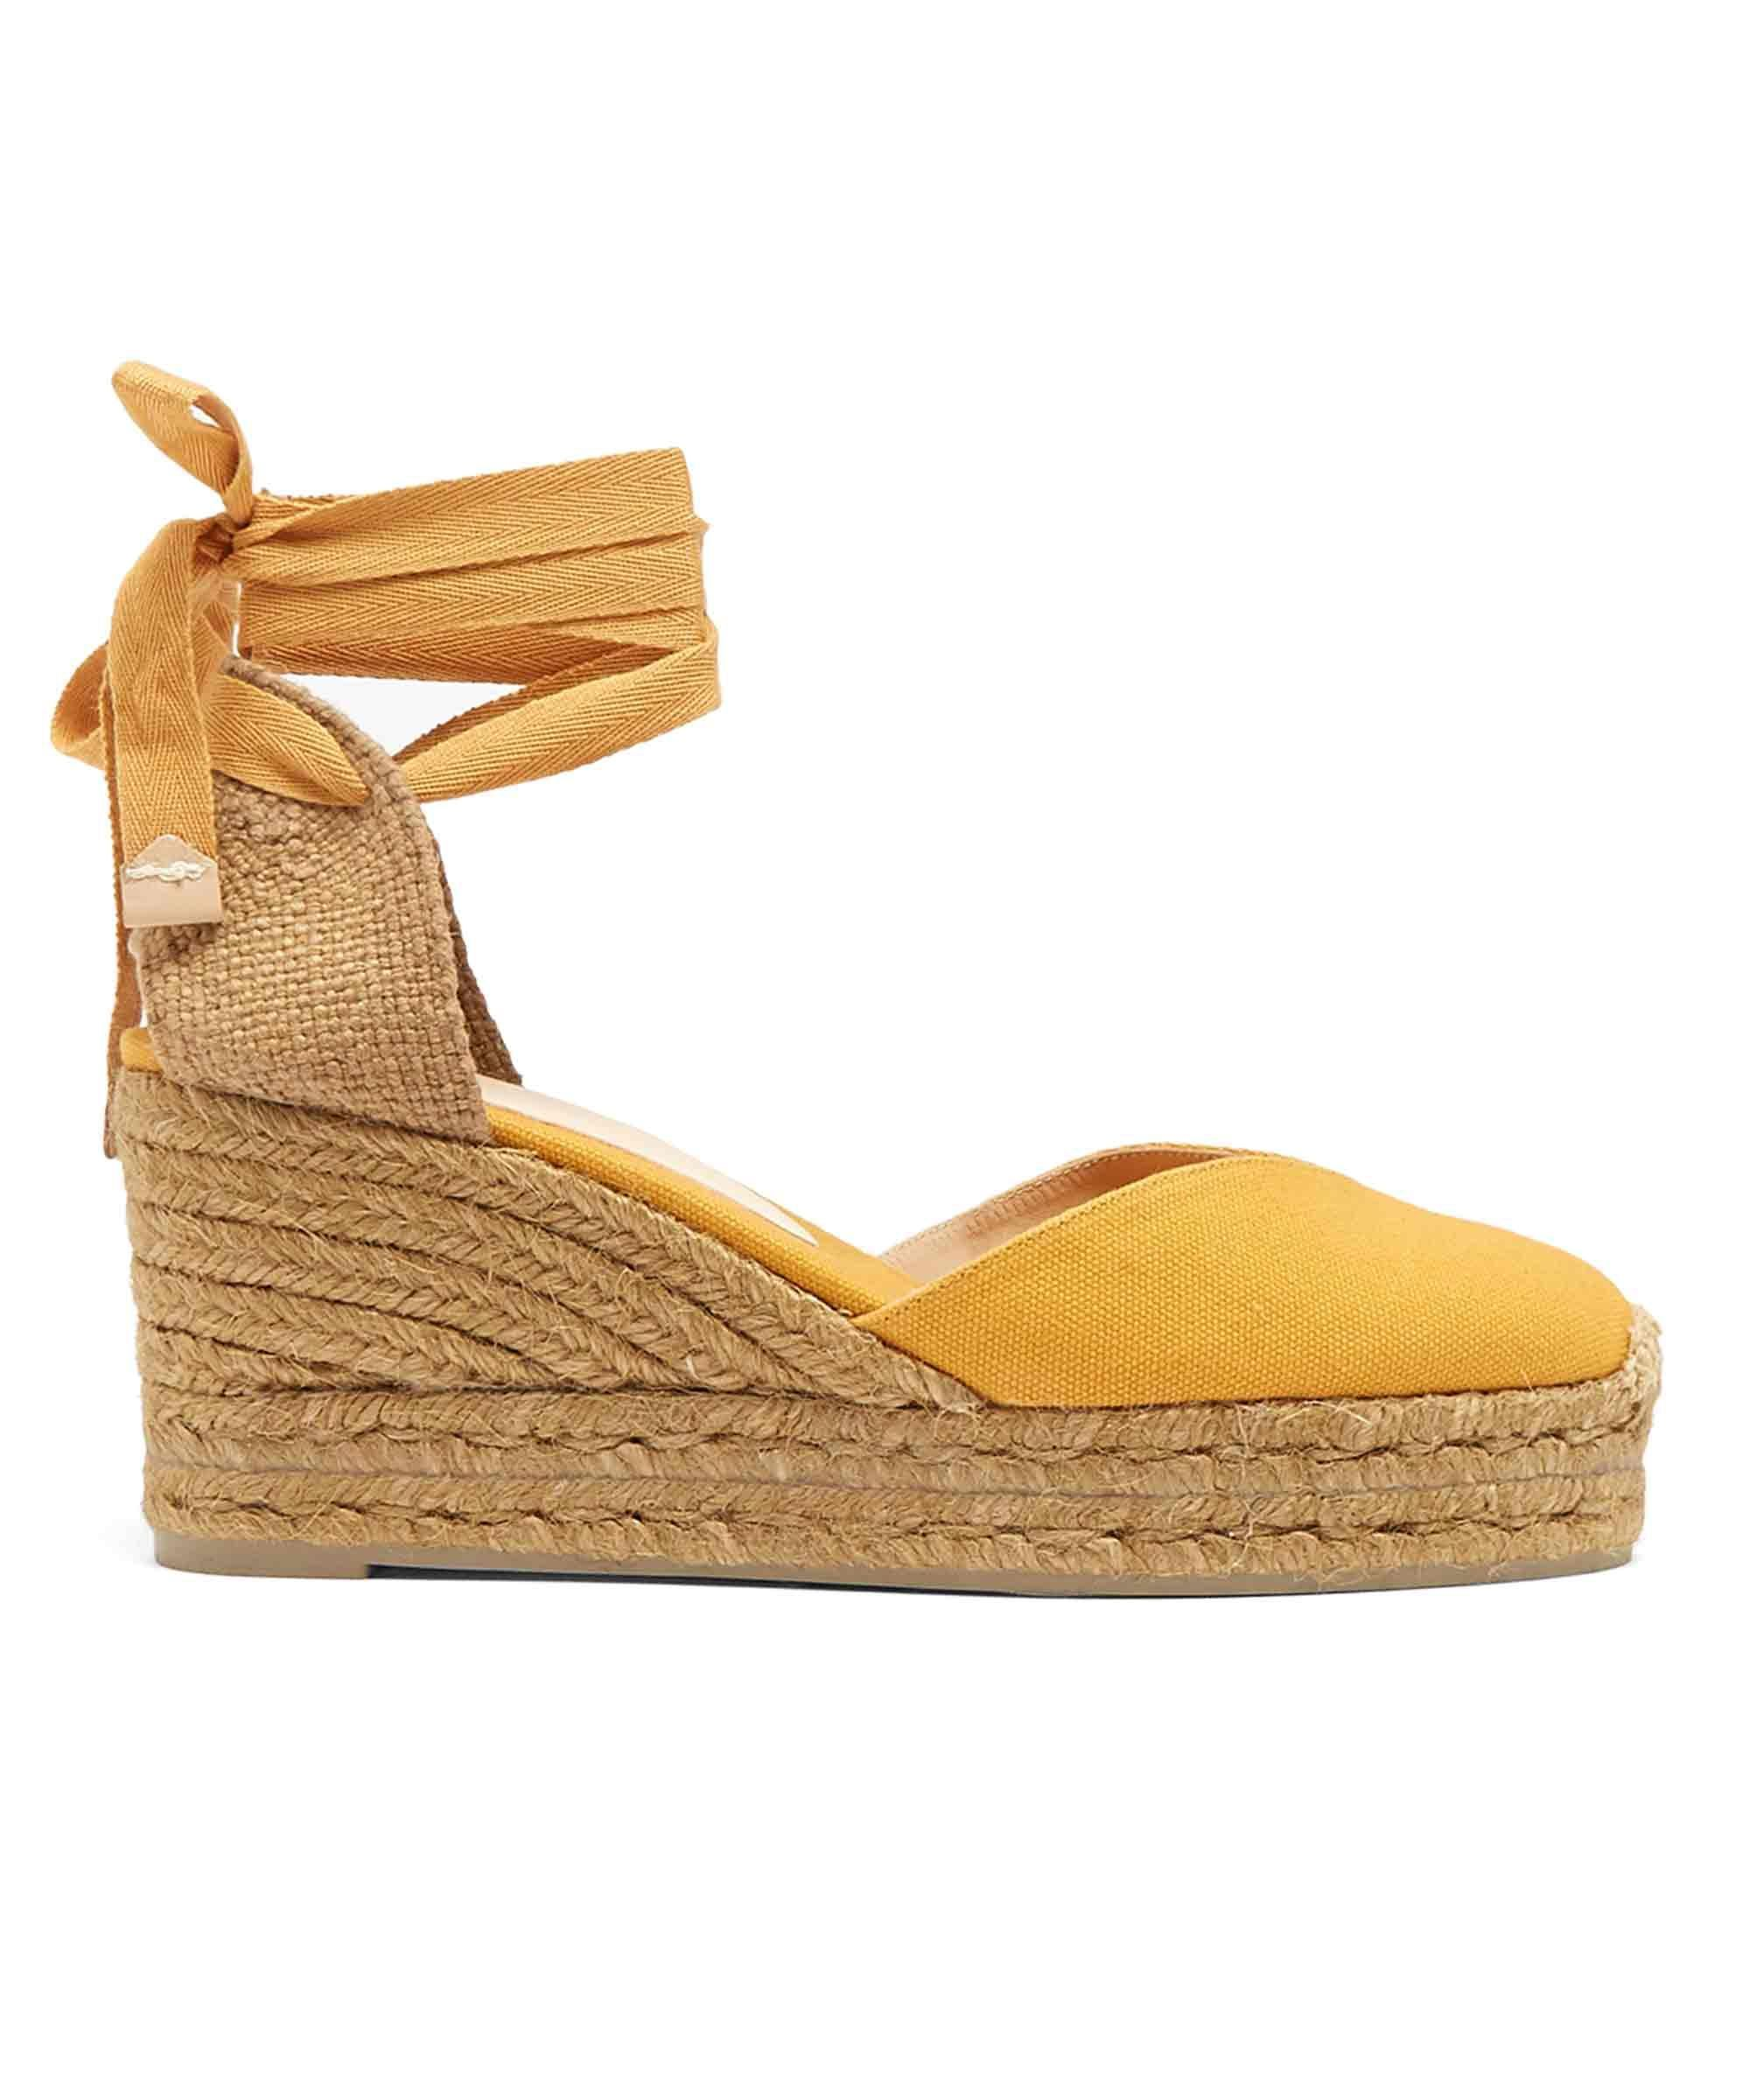 a73e4b83fe0 Introducing Summer '17's Most-Coveted Shoe: The Espadrille in 2019 ...